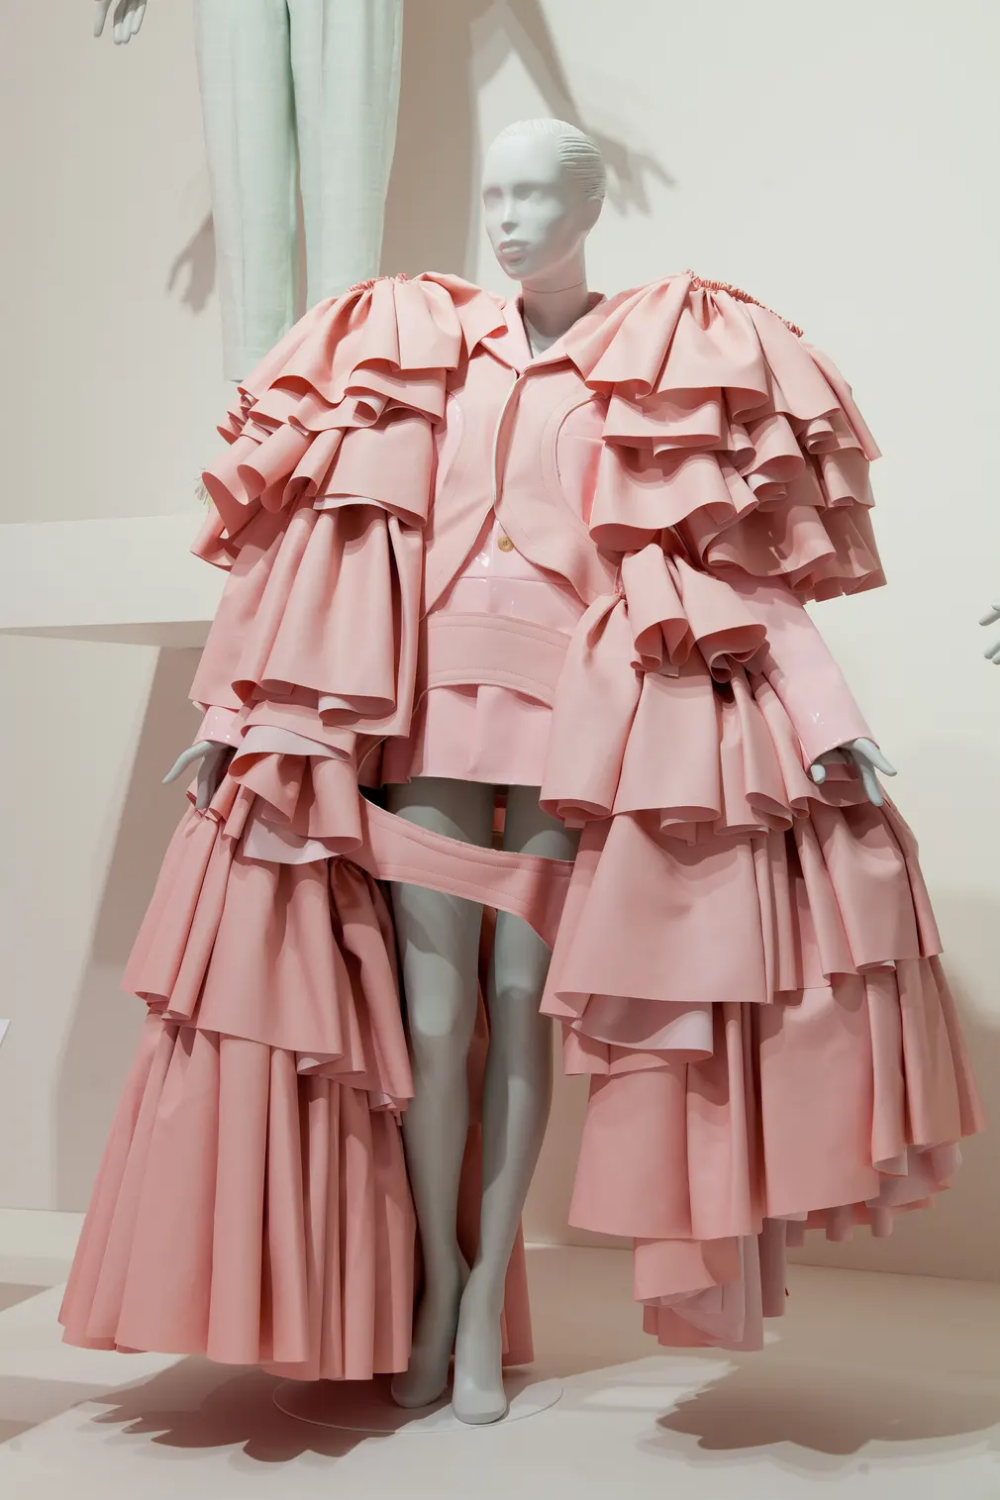 Balenciaga: 'the master' of couture's sculptural garments – in pictures #wearableart